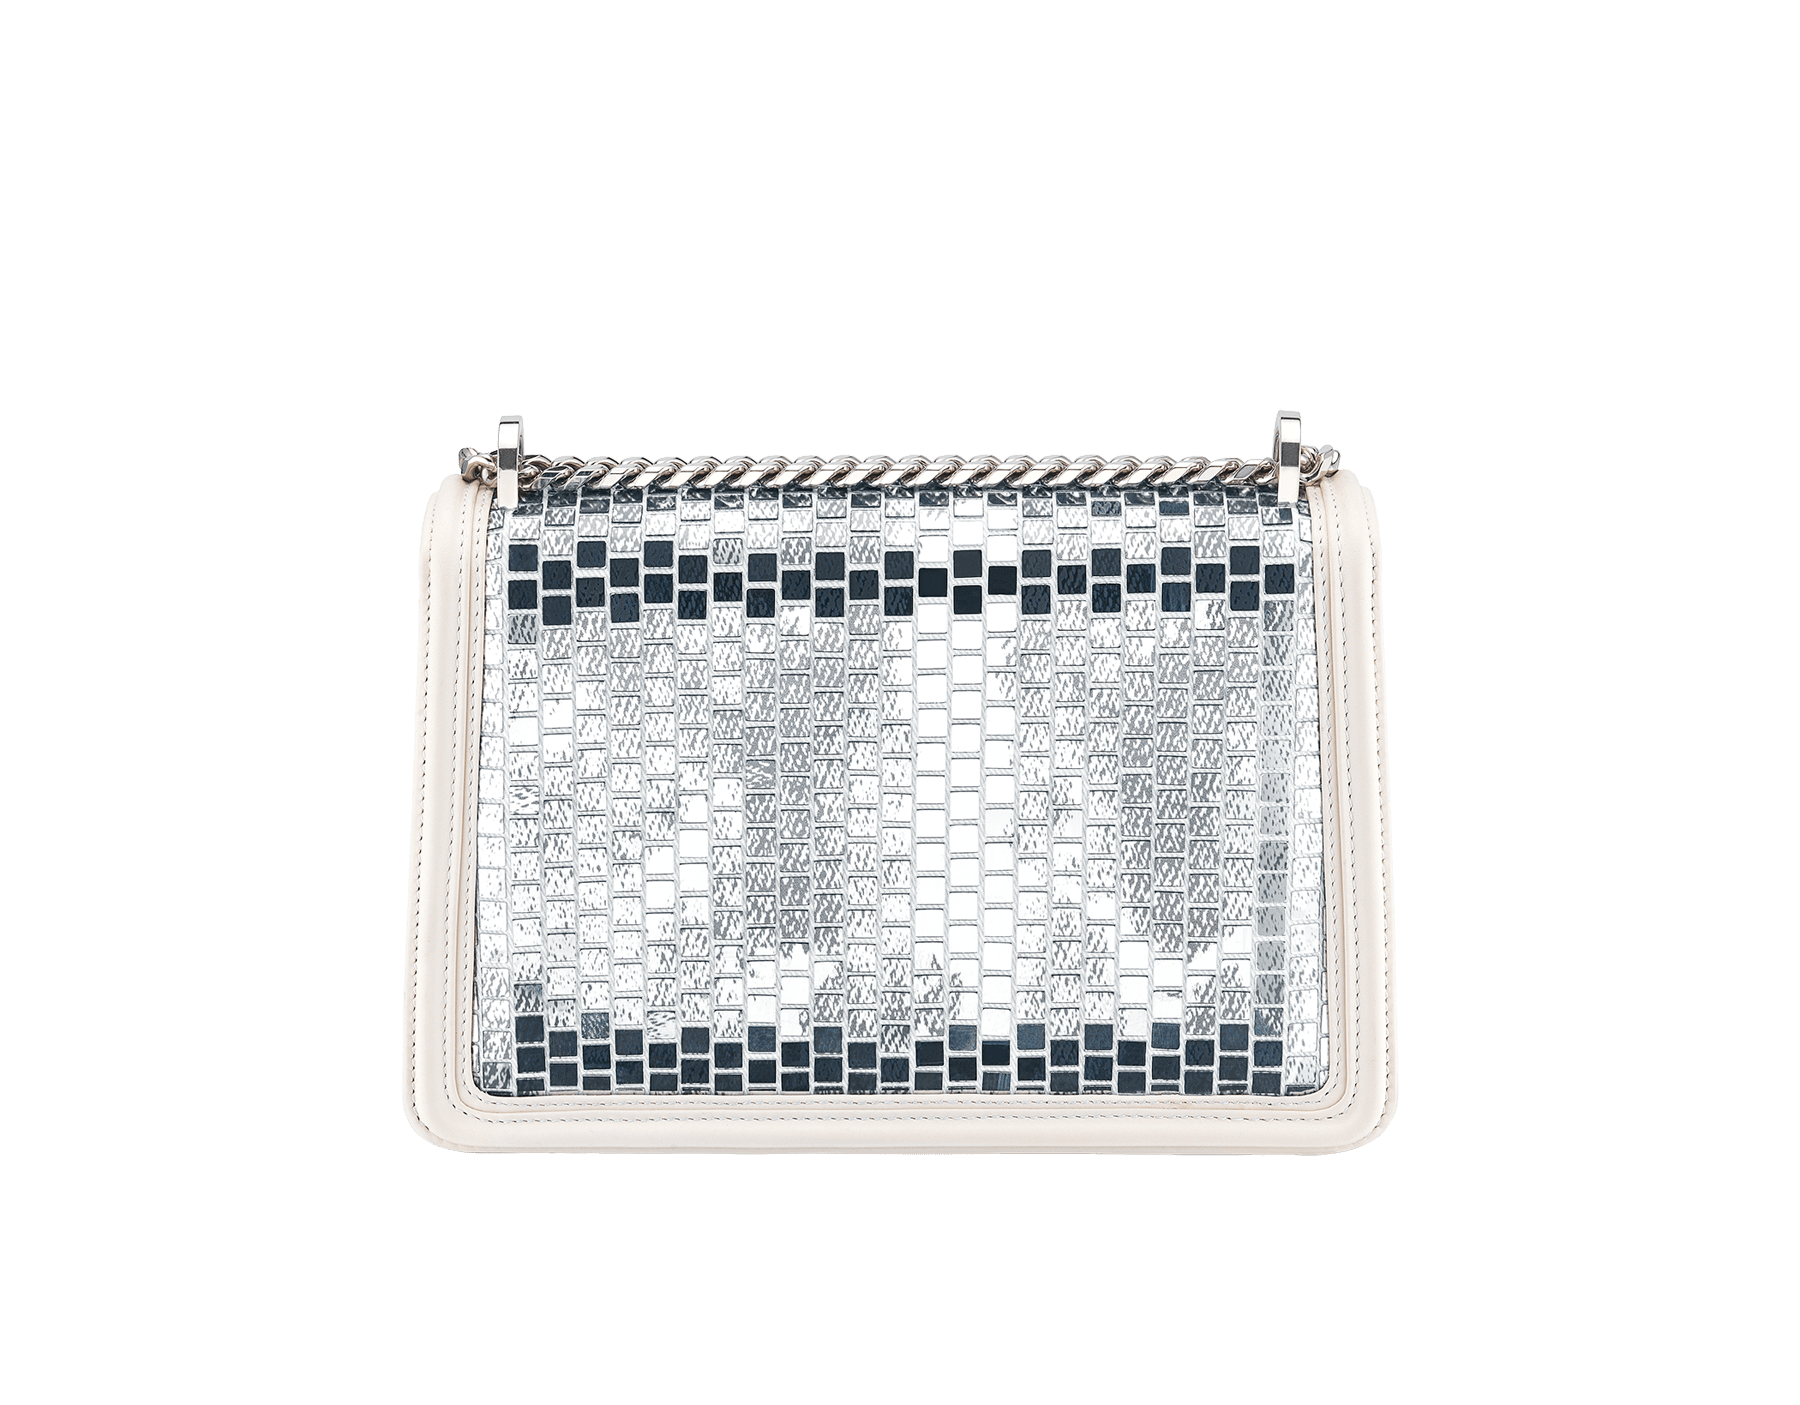 """""""Serpenti Diamond Blast"""" shoulder bag in white agate """"Mosaic Canvas"""" calf leather. Iconic snake head closure in palladium plated brass enriched with matte black and shiny white enamel and black onyx eyes. 289881 image 2"""